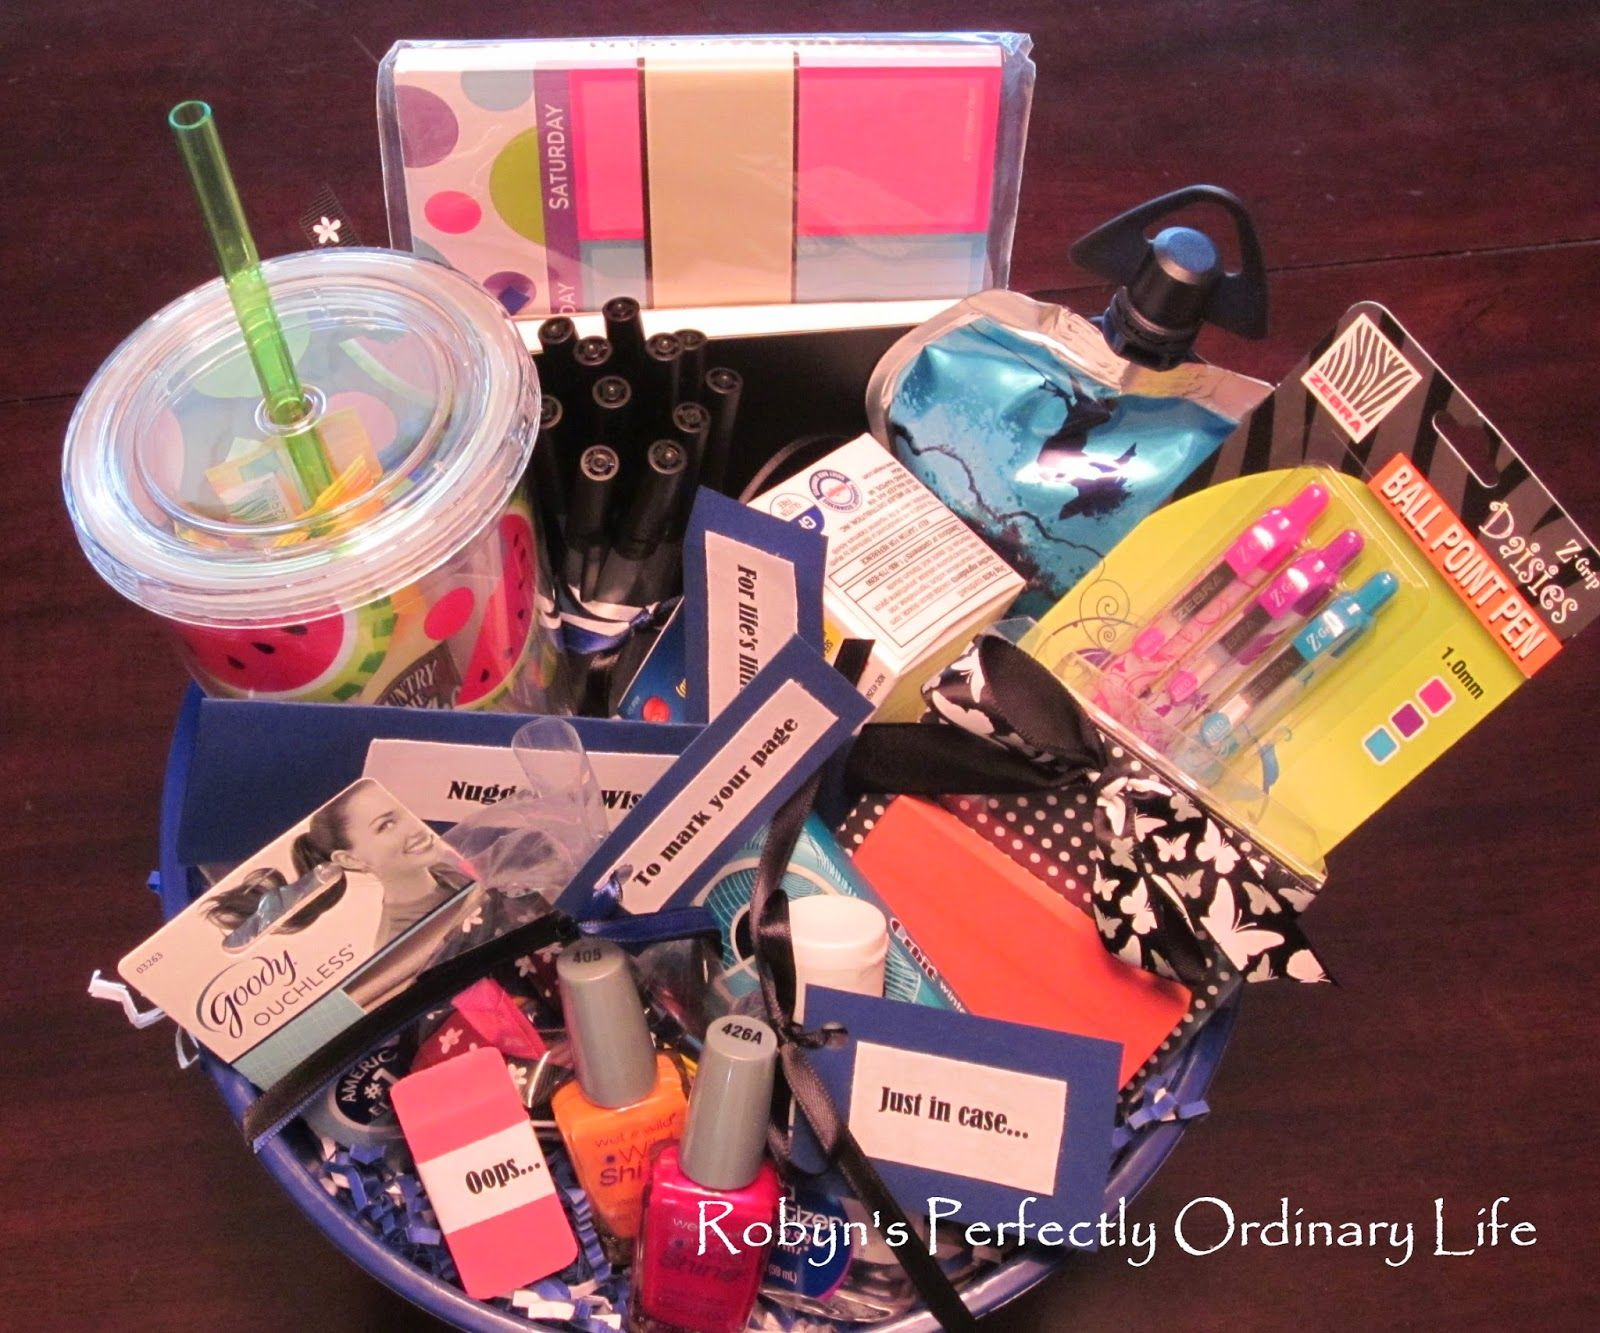 Robyns perfectly ordinary life teen graduation gift basket off robyns perfectly ordinary life teen graduation gift basket off to school negle Image collections